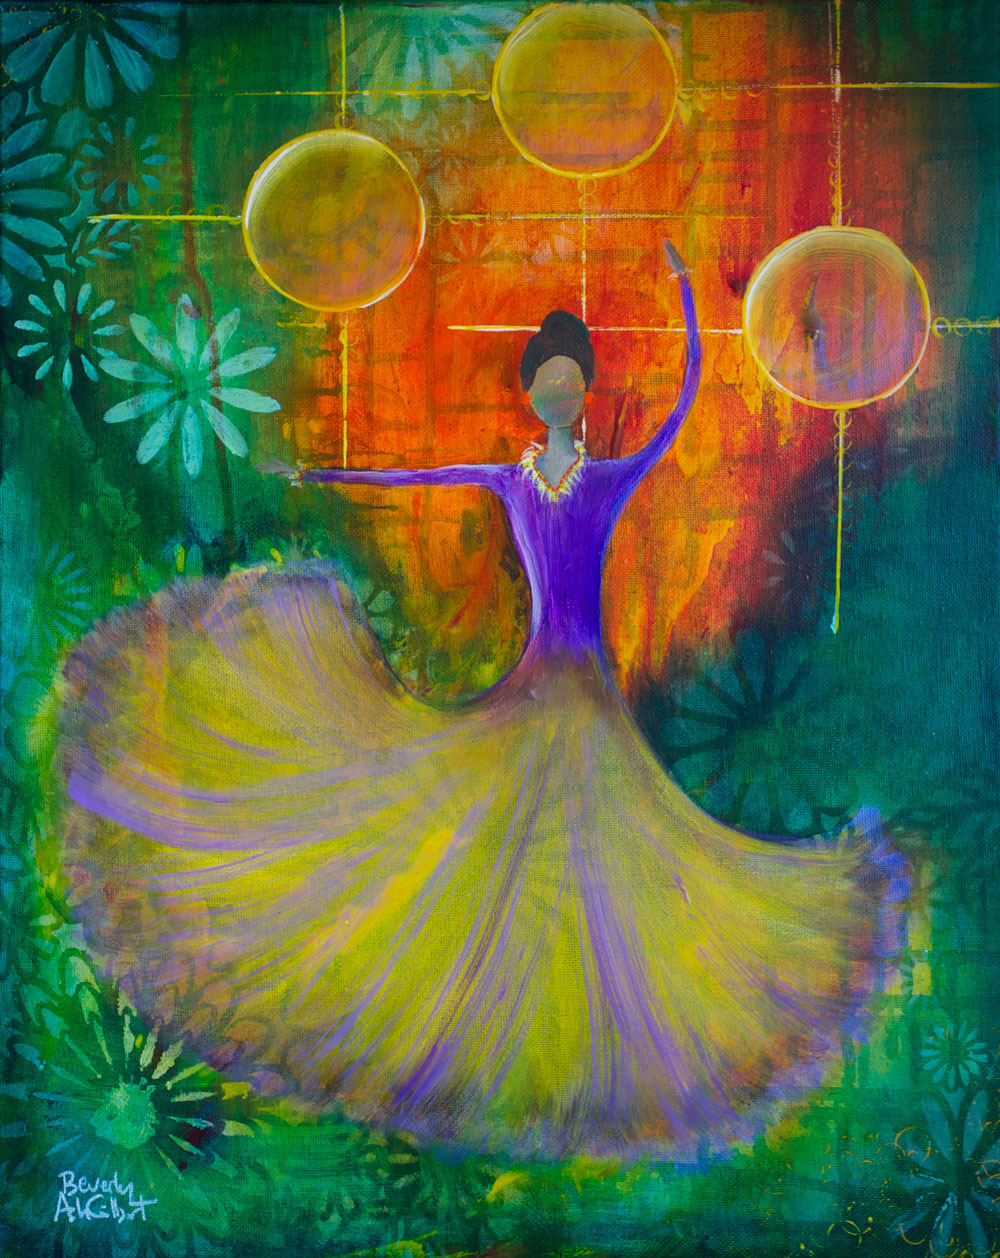 Ballroom Dancer - Dance With Color Painting Collection - Beverly Ash Gilbert